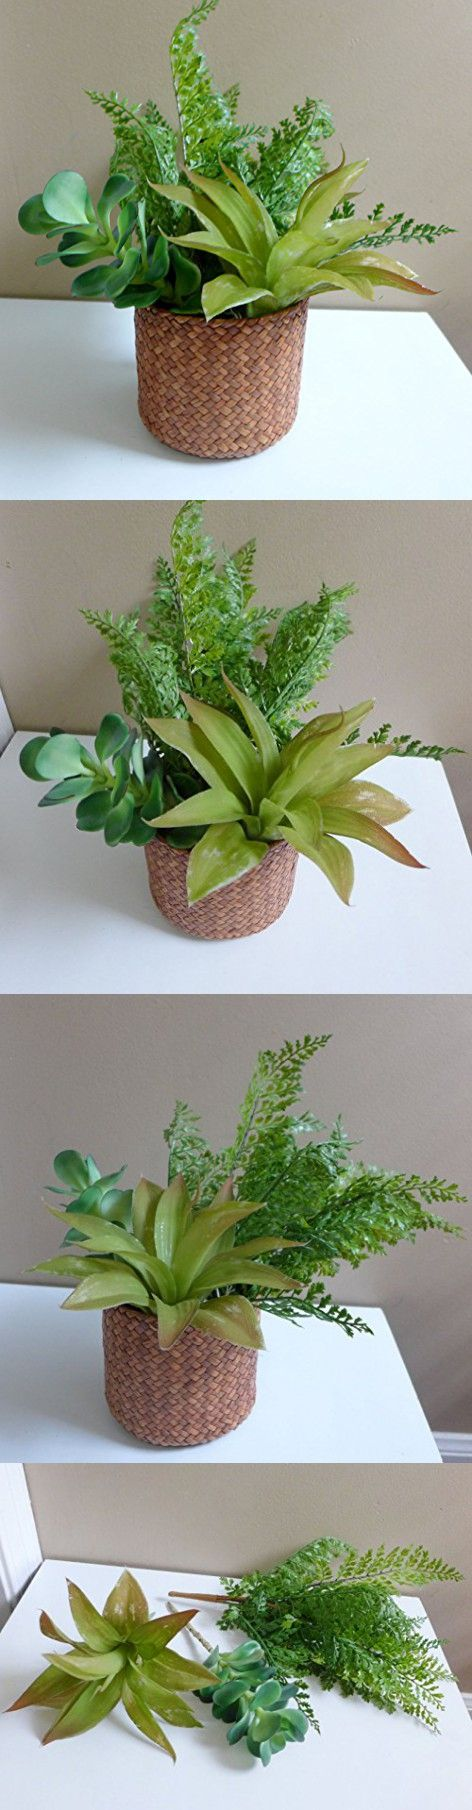 Artificial plants for kitchen - Artificial Plants Lifelike Mini Succulents Plastic Grass Kitchen Table Gift Coffee Shops Home Garden Wedding Craft